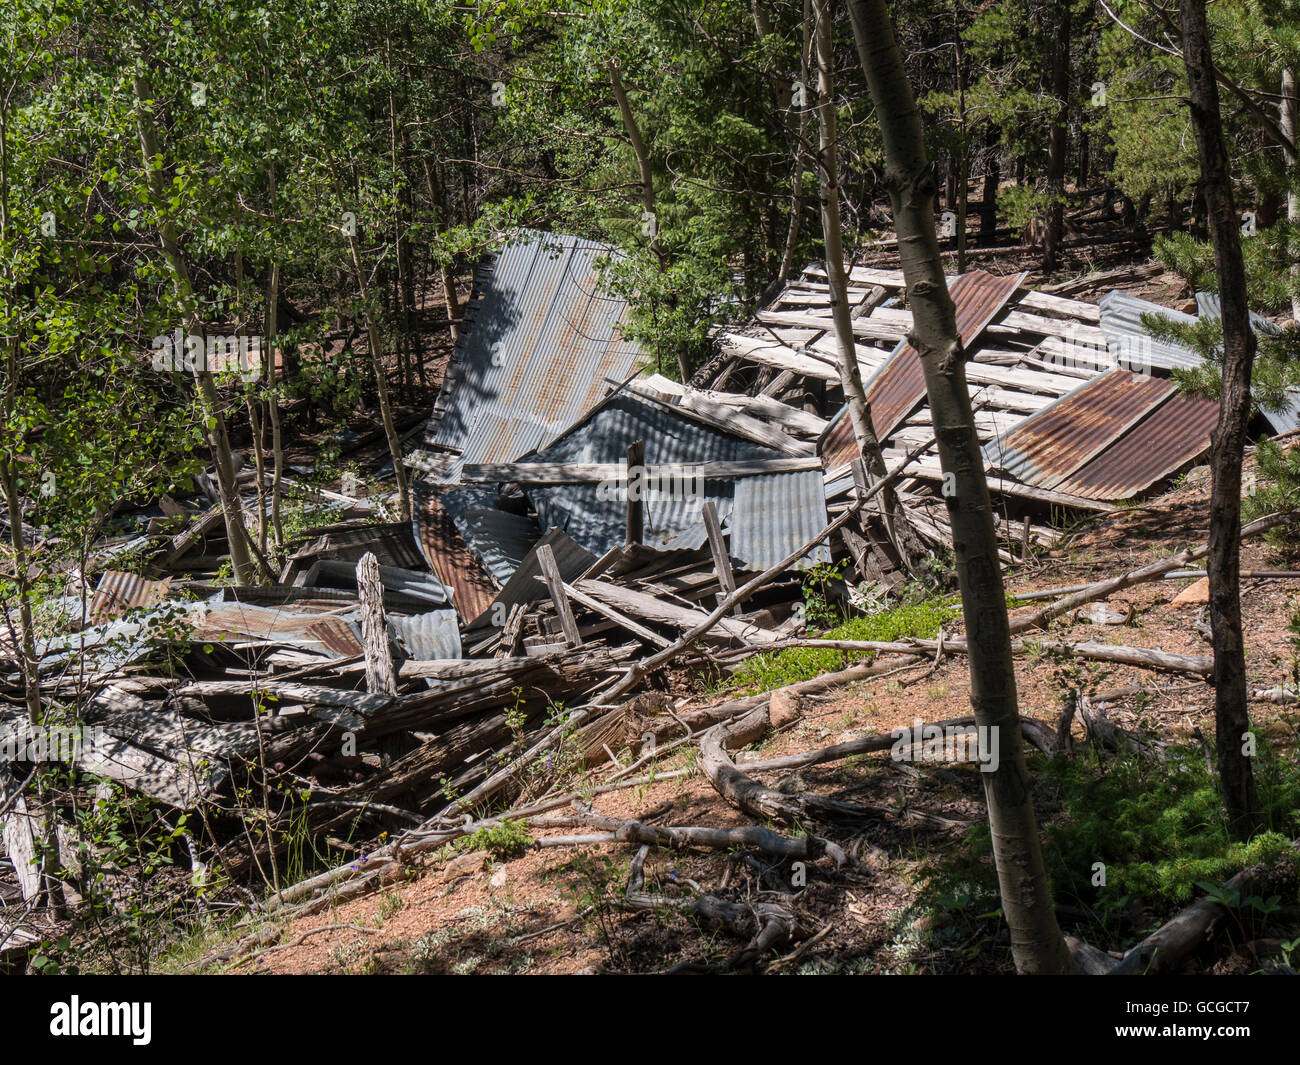 Remains of the mill, Old Mill Site, Staunton State Park, Pine, Colorado. - Stock Image